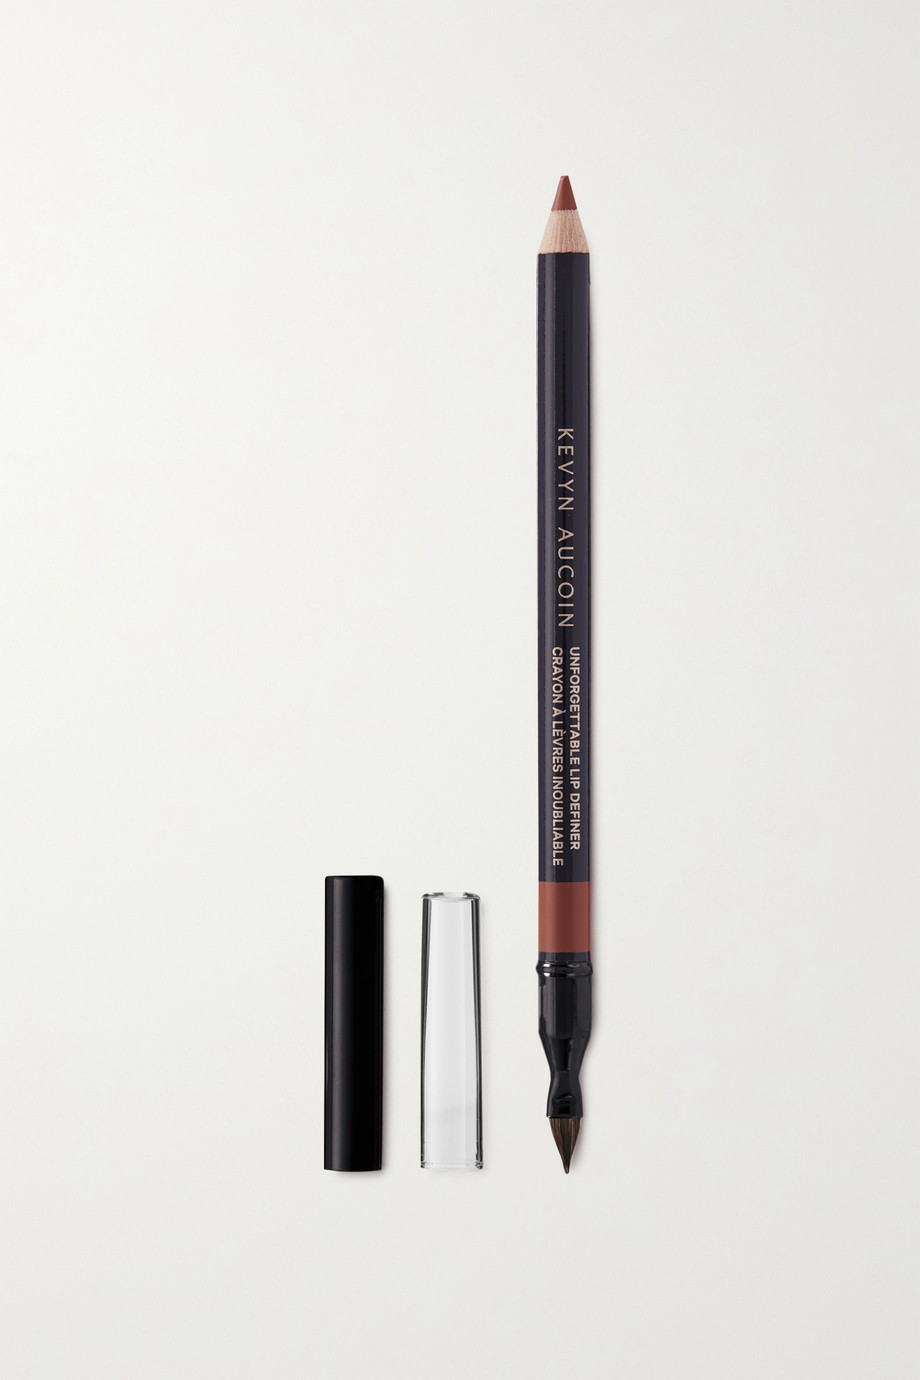 Kevyn Aucoin Unforgettable Lip Definer - New Naked